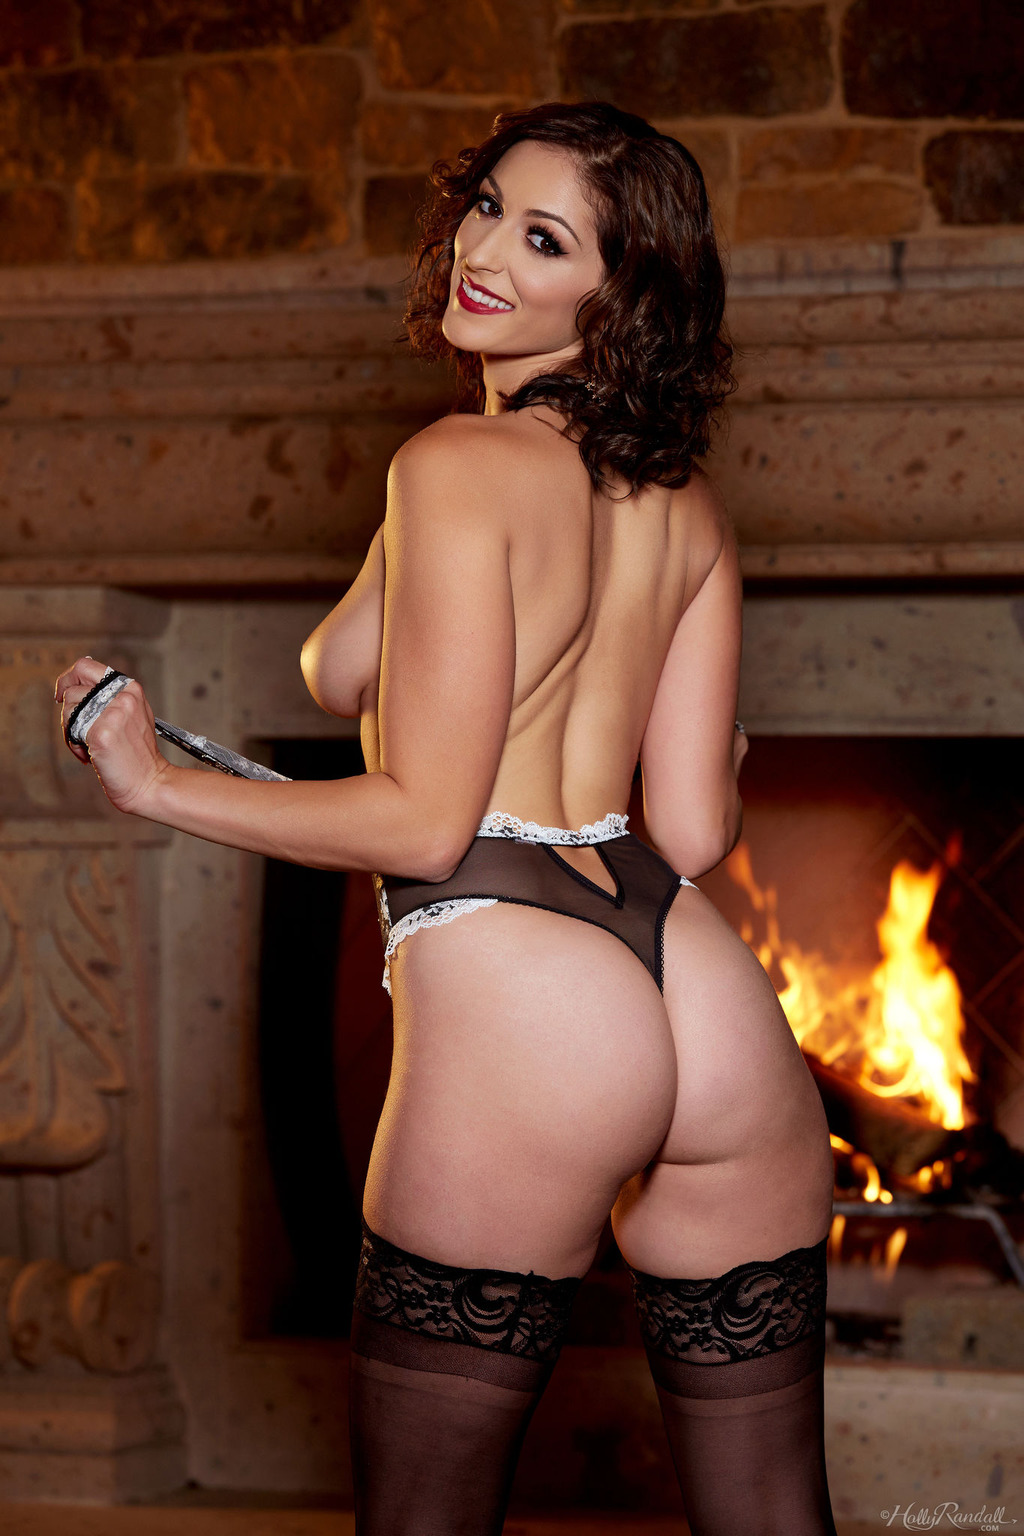 Glam Babe Carlotta Champagnestrips By The Fireplace 07